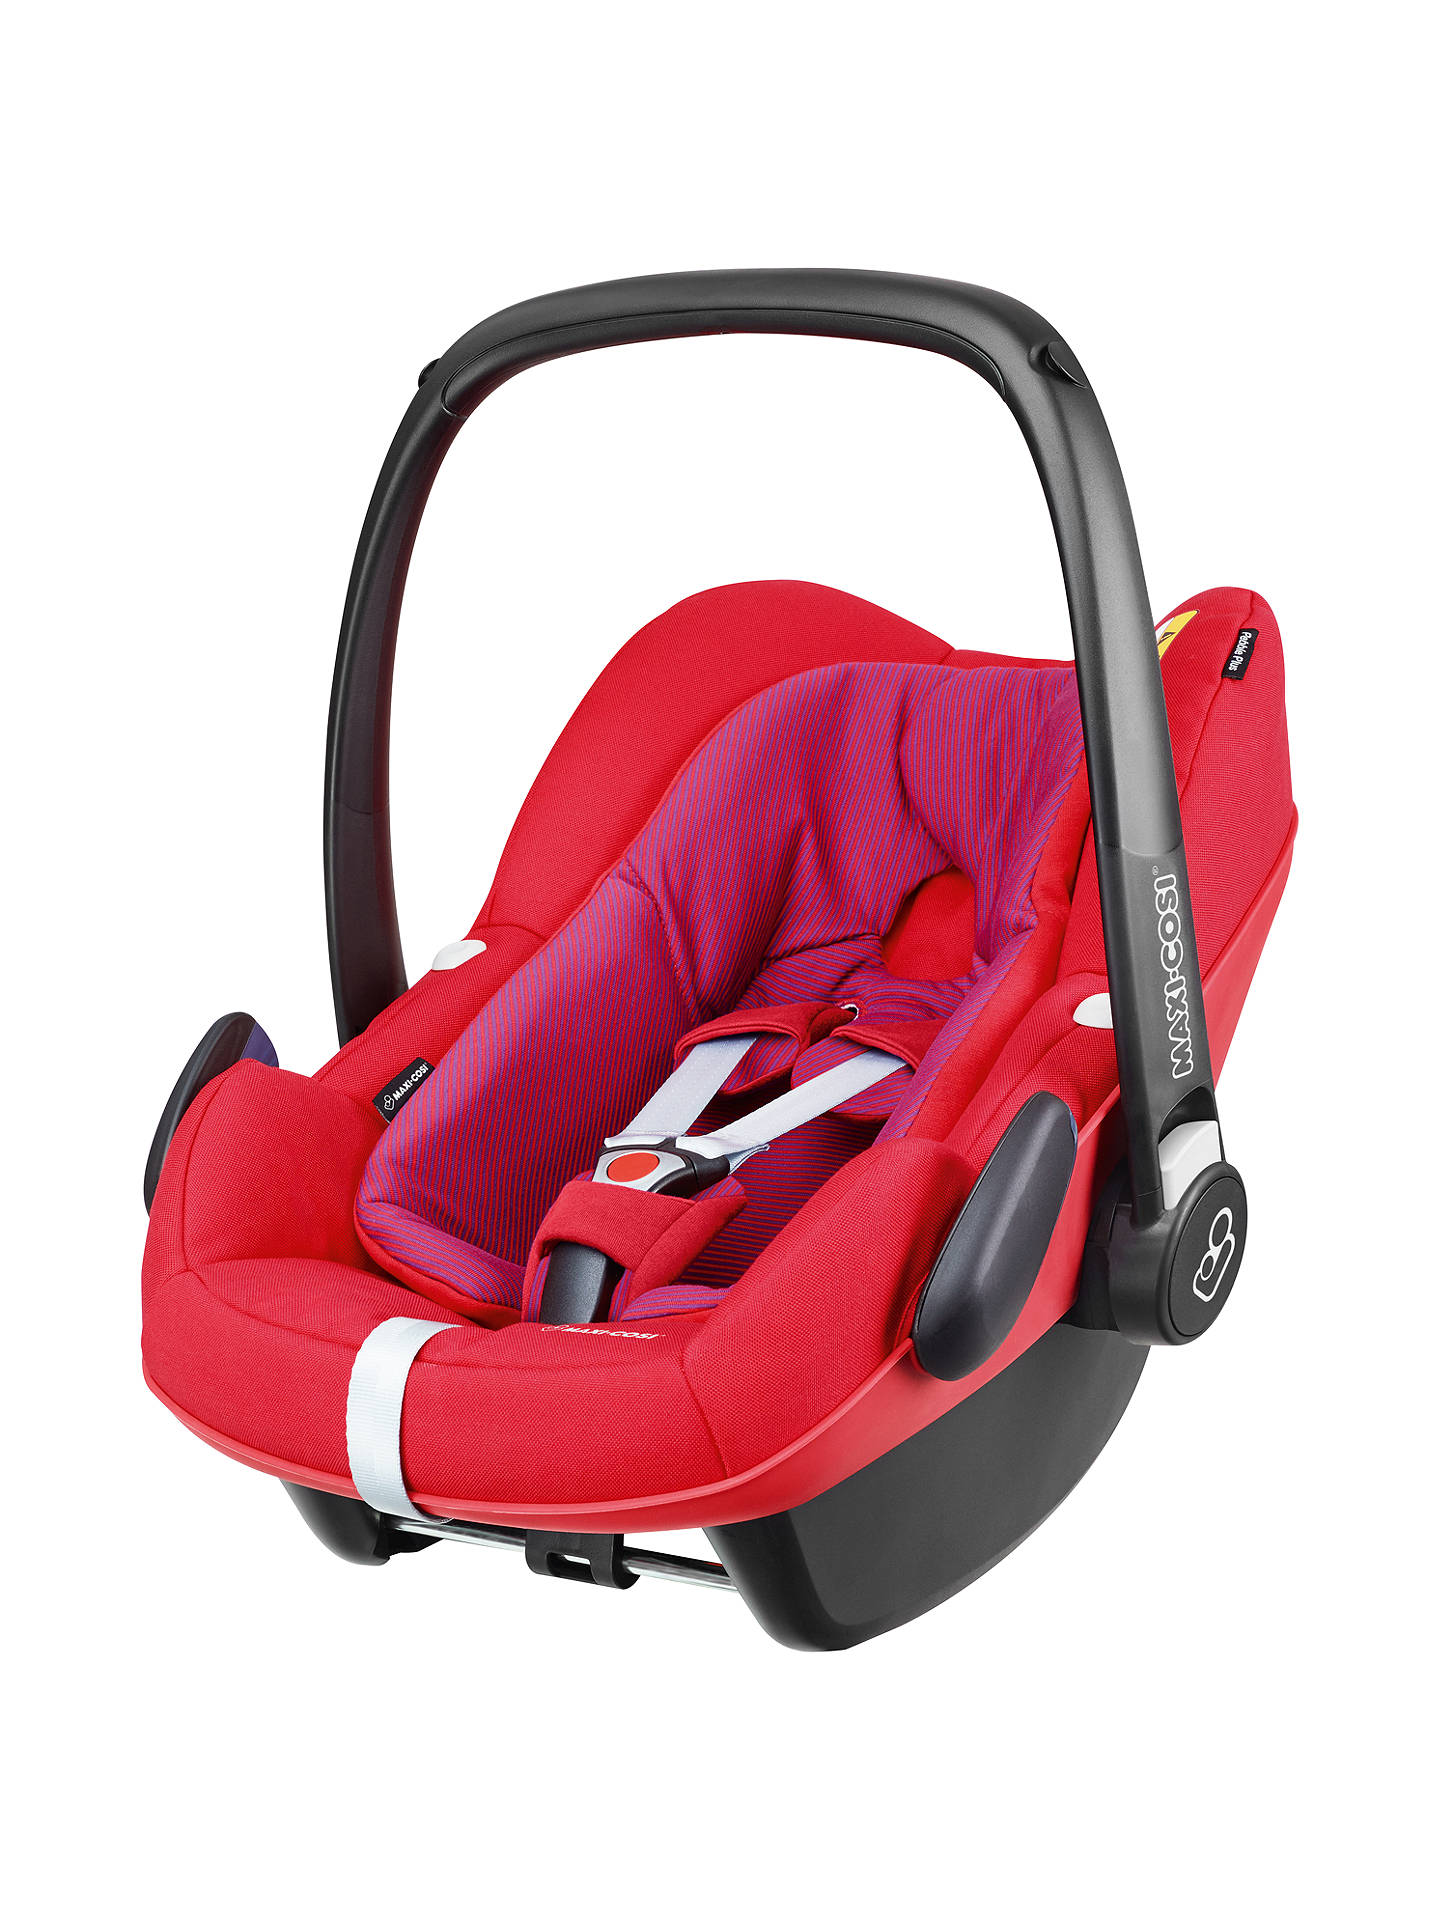 maxi cosi pebble plus i size group 0 baby car seat red orchid at john lewis partners. Black Bedroom Furniture Sets. Home Design Ideas